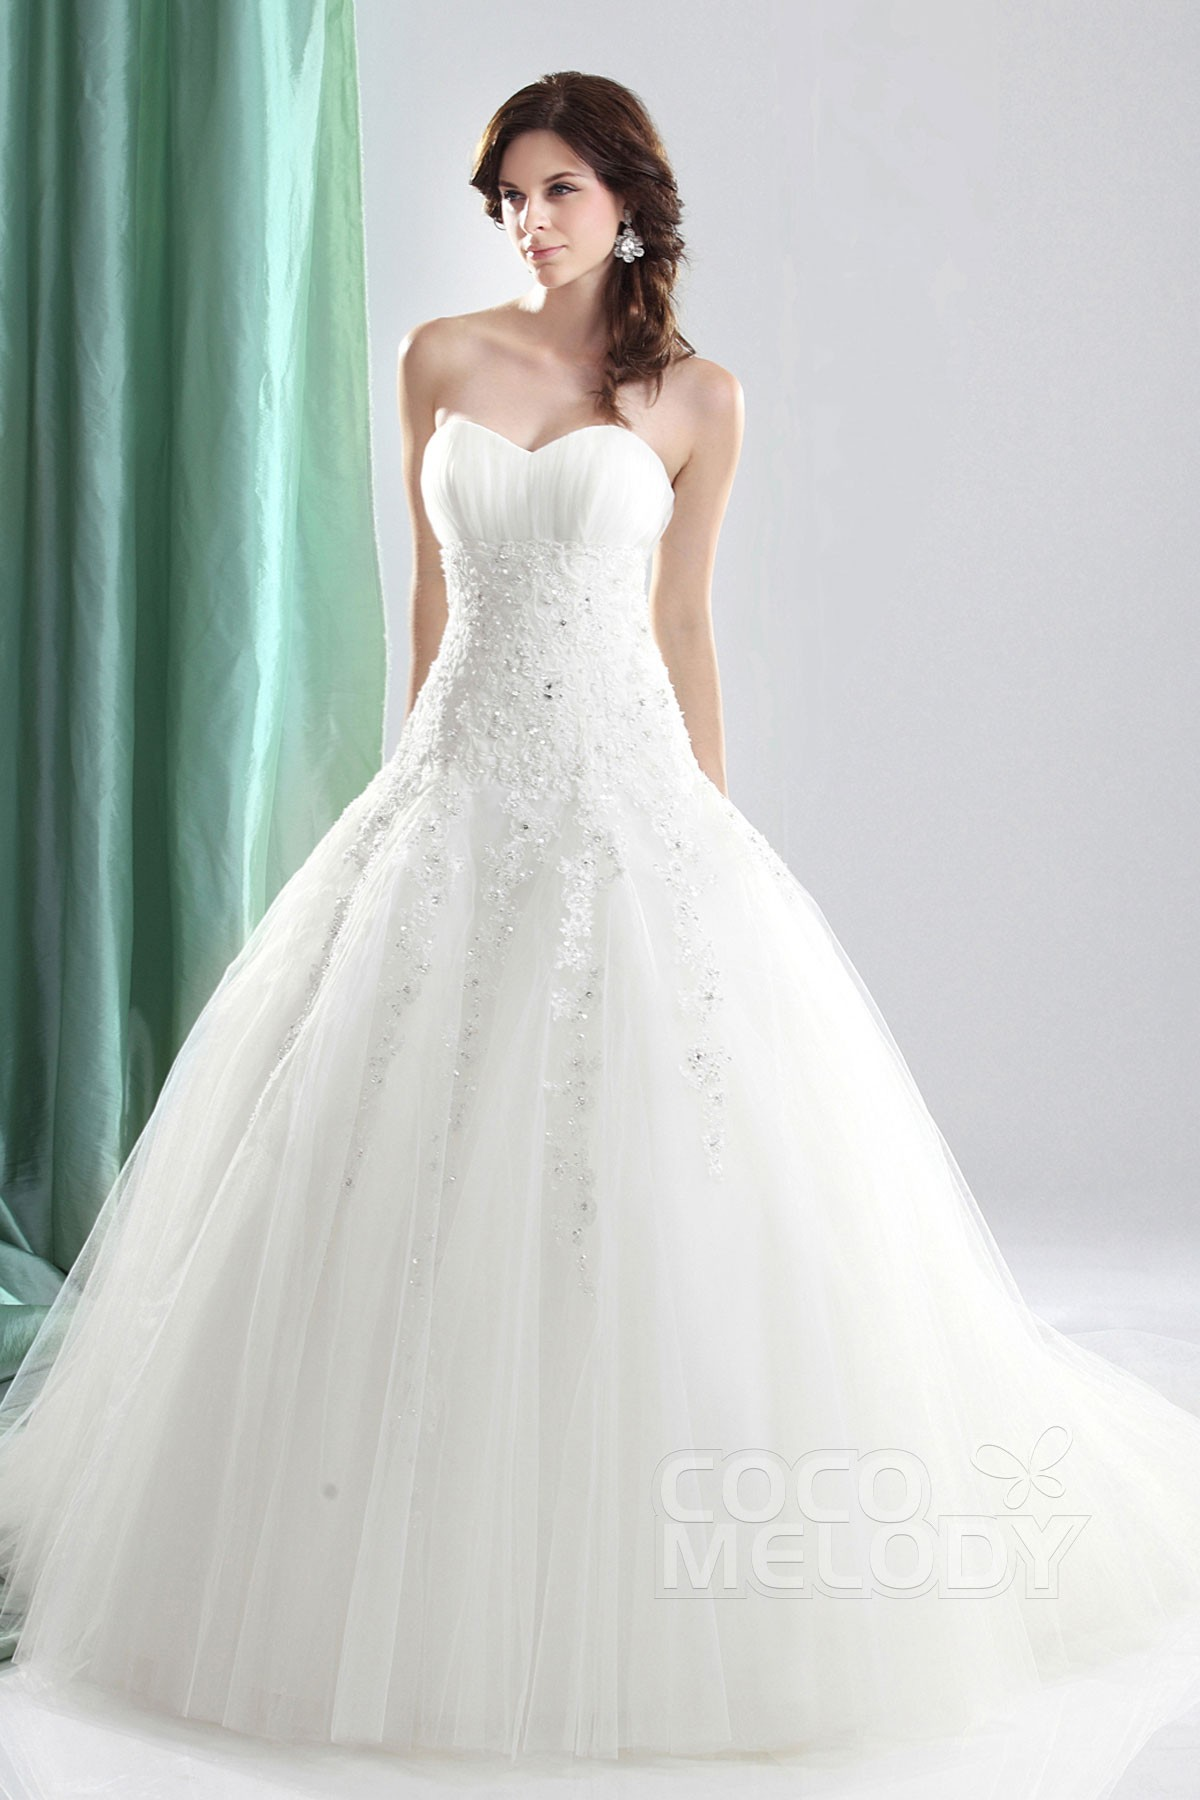 Ball Gown Court Train Tulle Wedding Dress CWLT1304C | Cocomelody